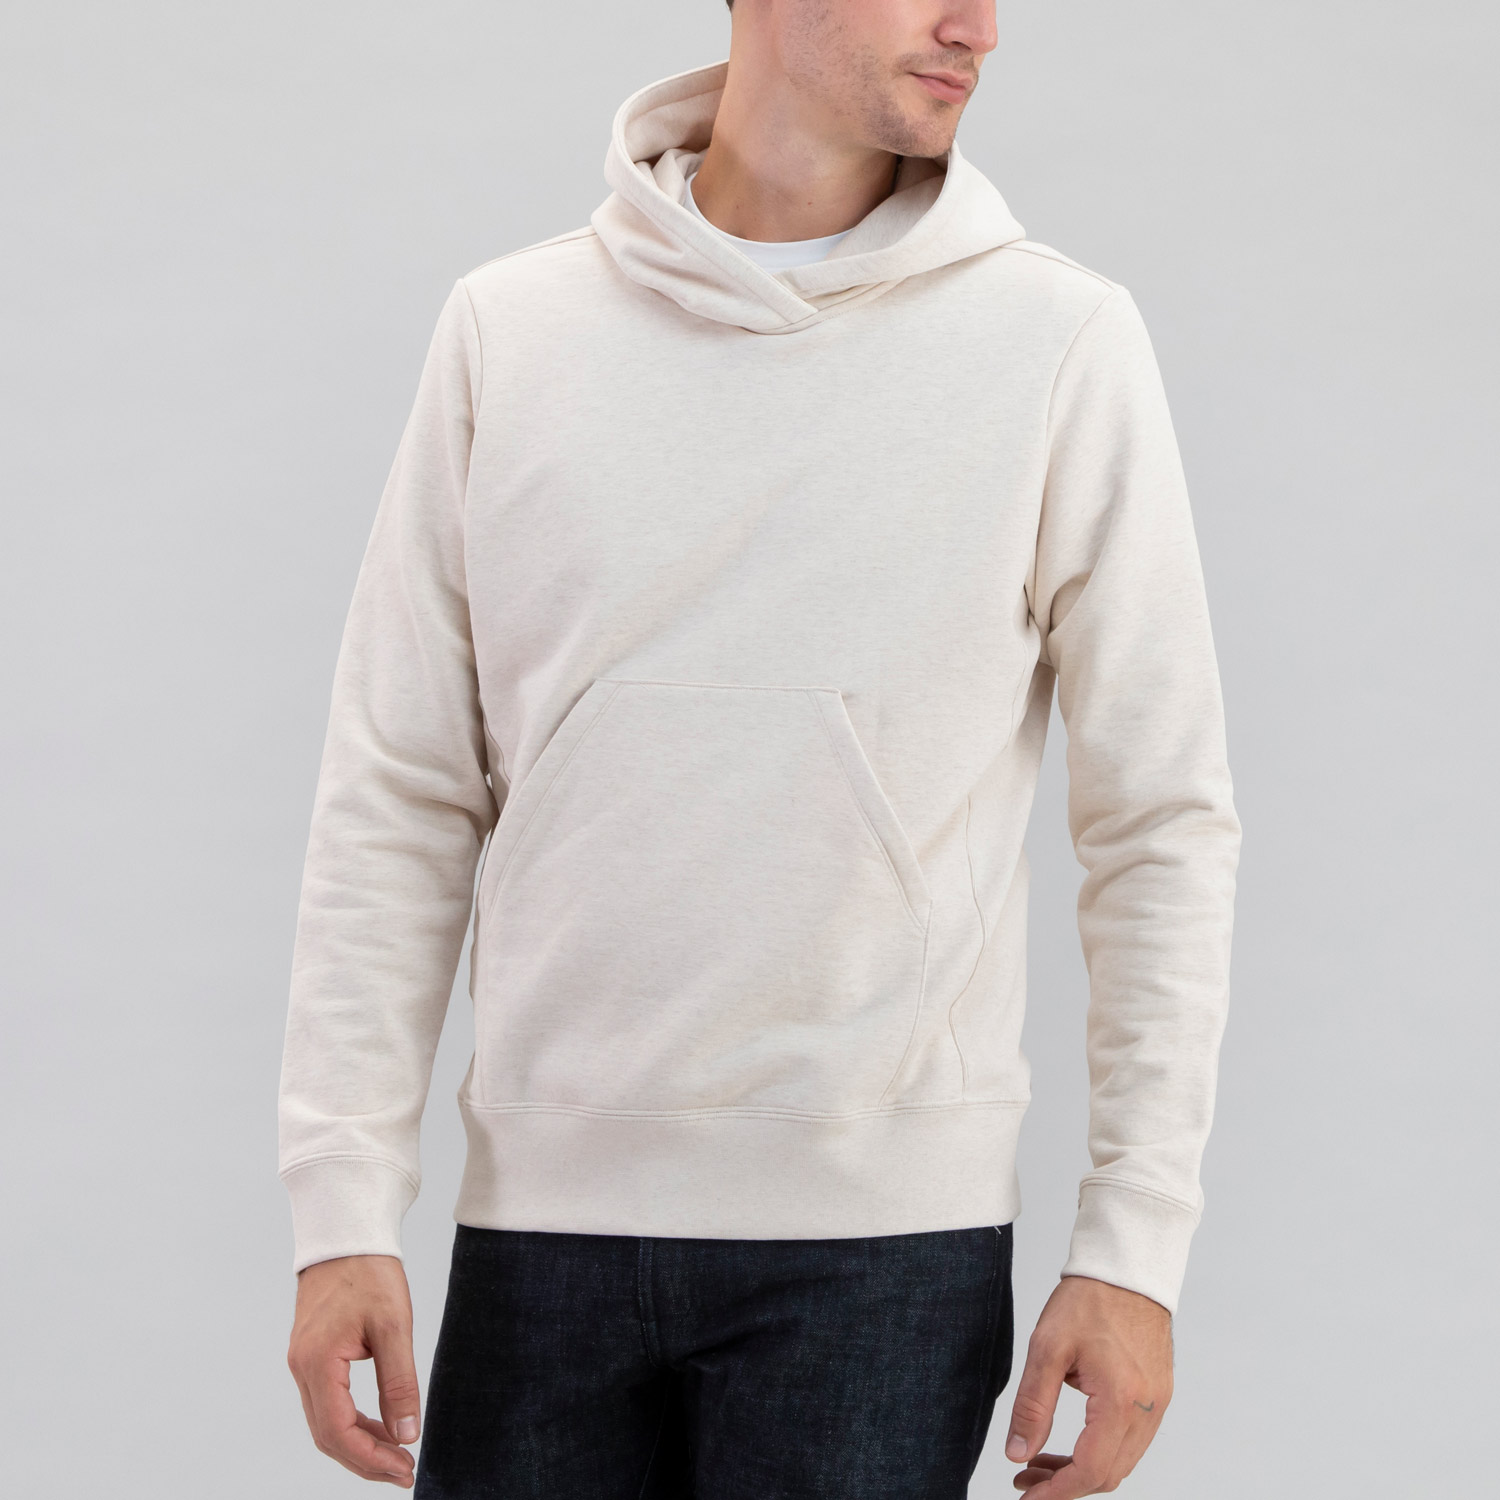 Electric Company Pullover Heather Tan